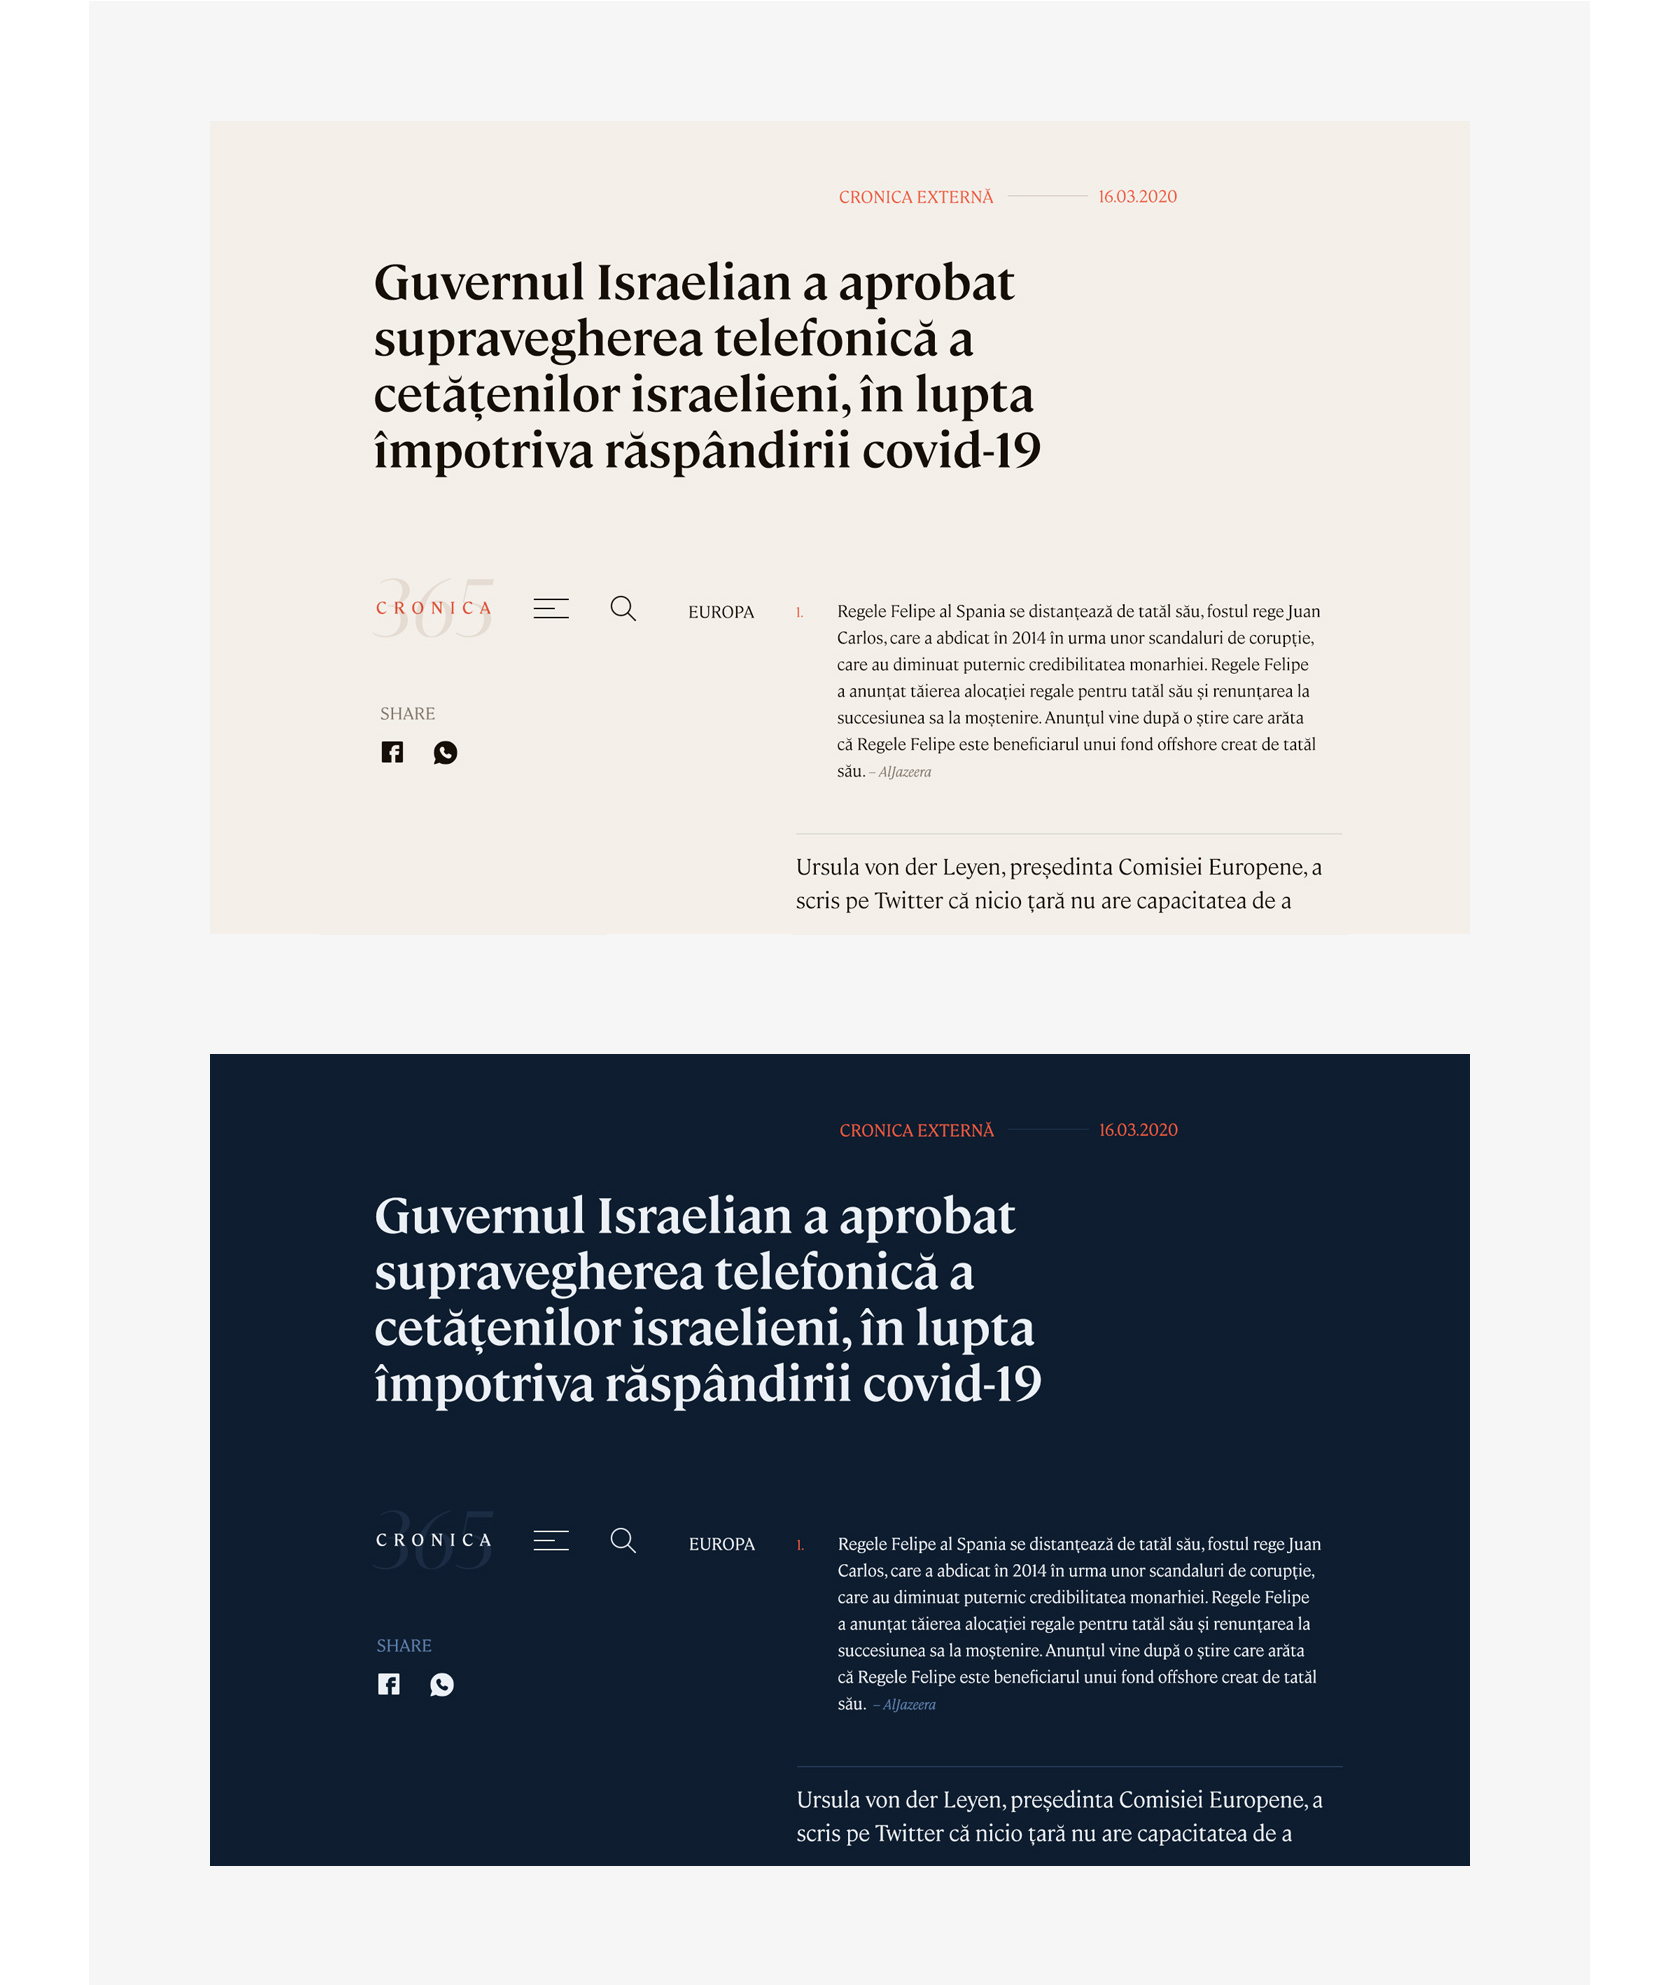 news_editorial_layout_desing